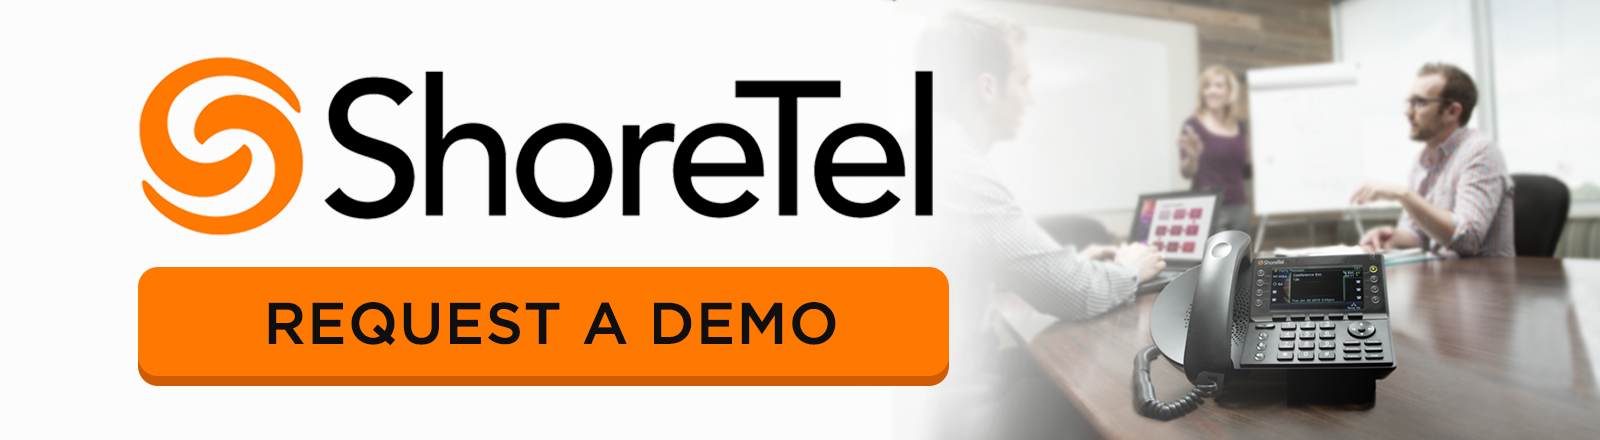 ShoreTel request a demo